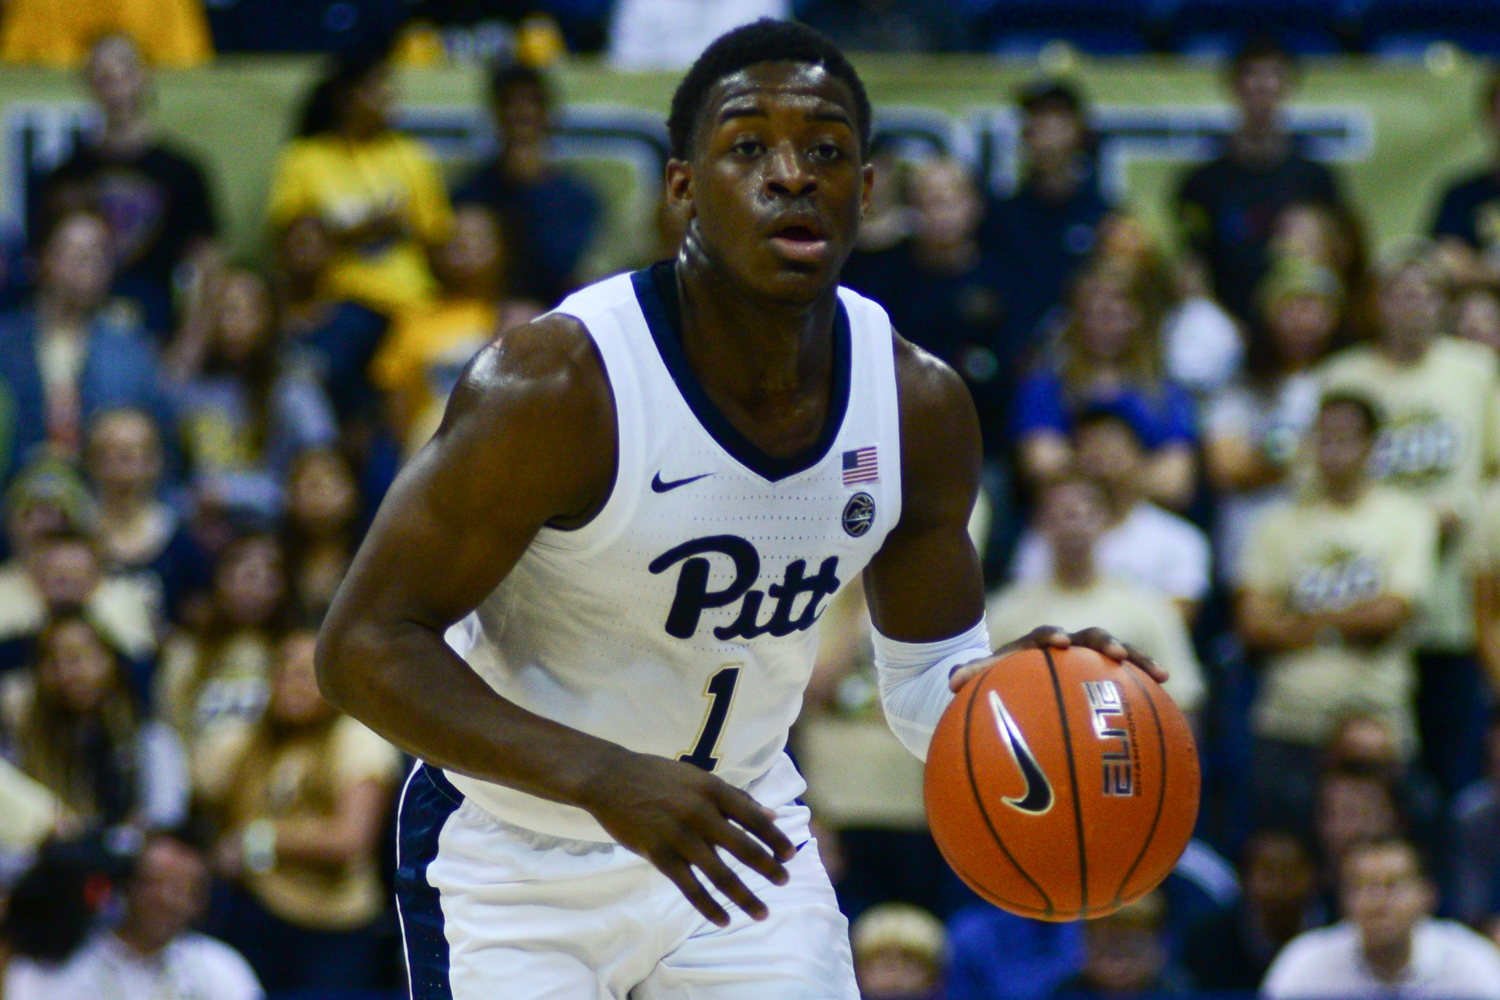 First-year guard Xavier Johnson (1) contributed 16 points in Pitt's 69-53 victory over Youngstown State Tuesday night.